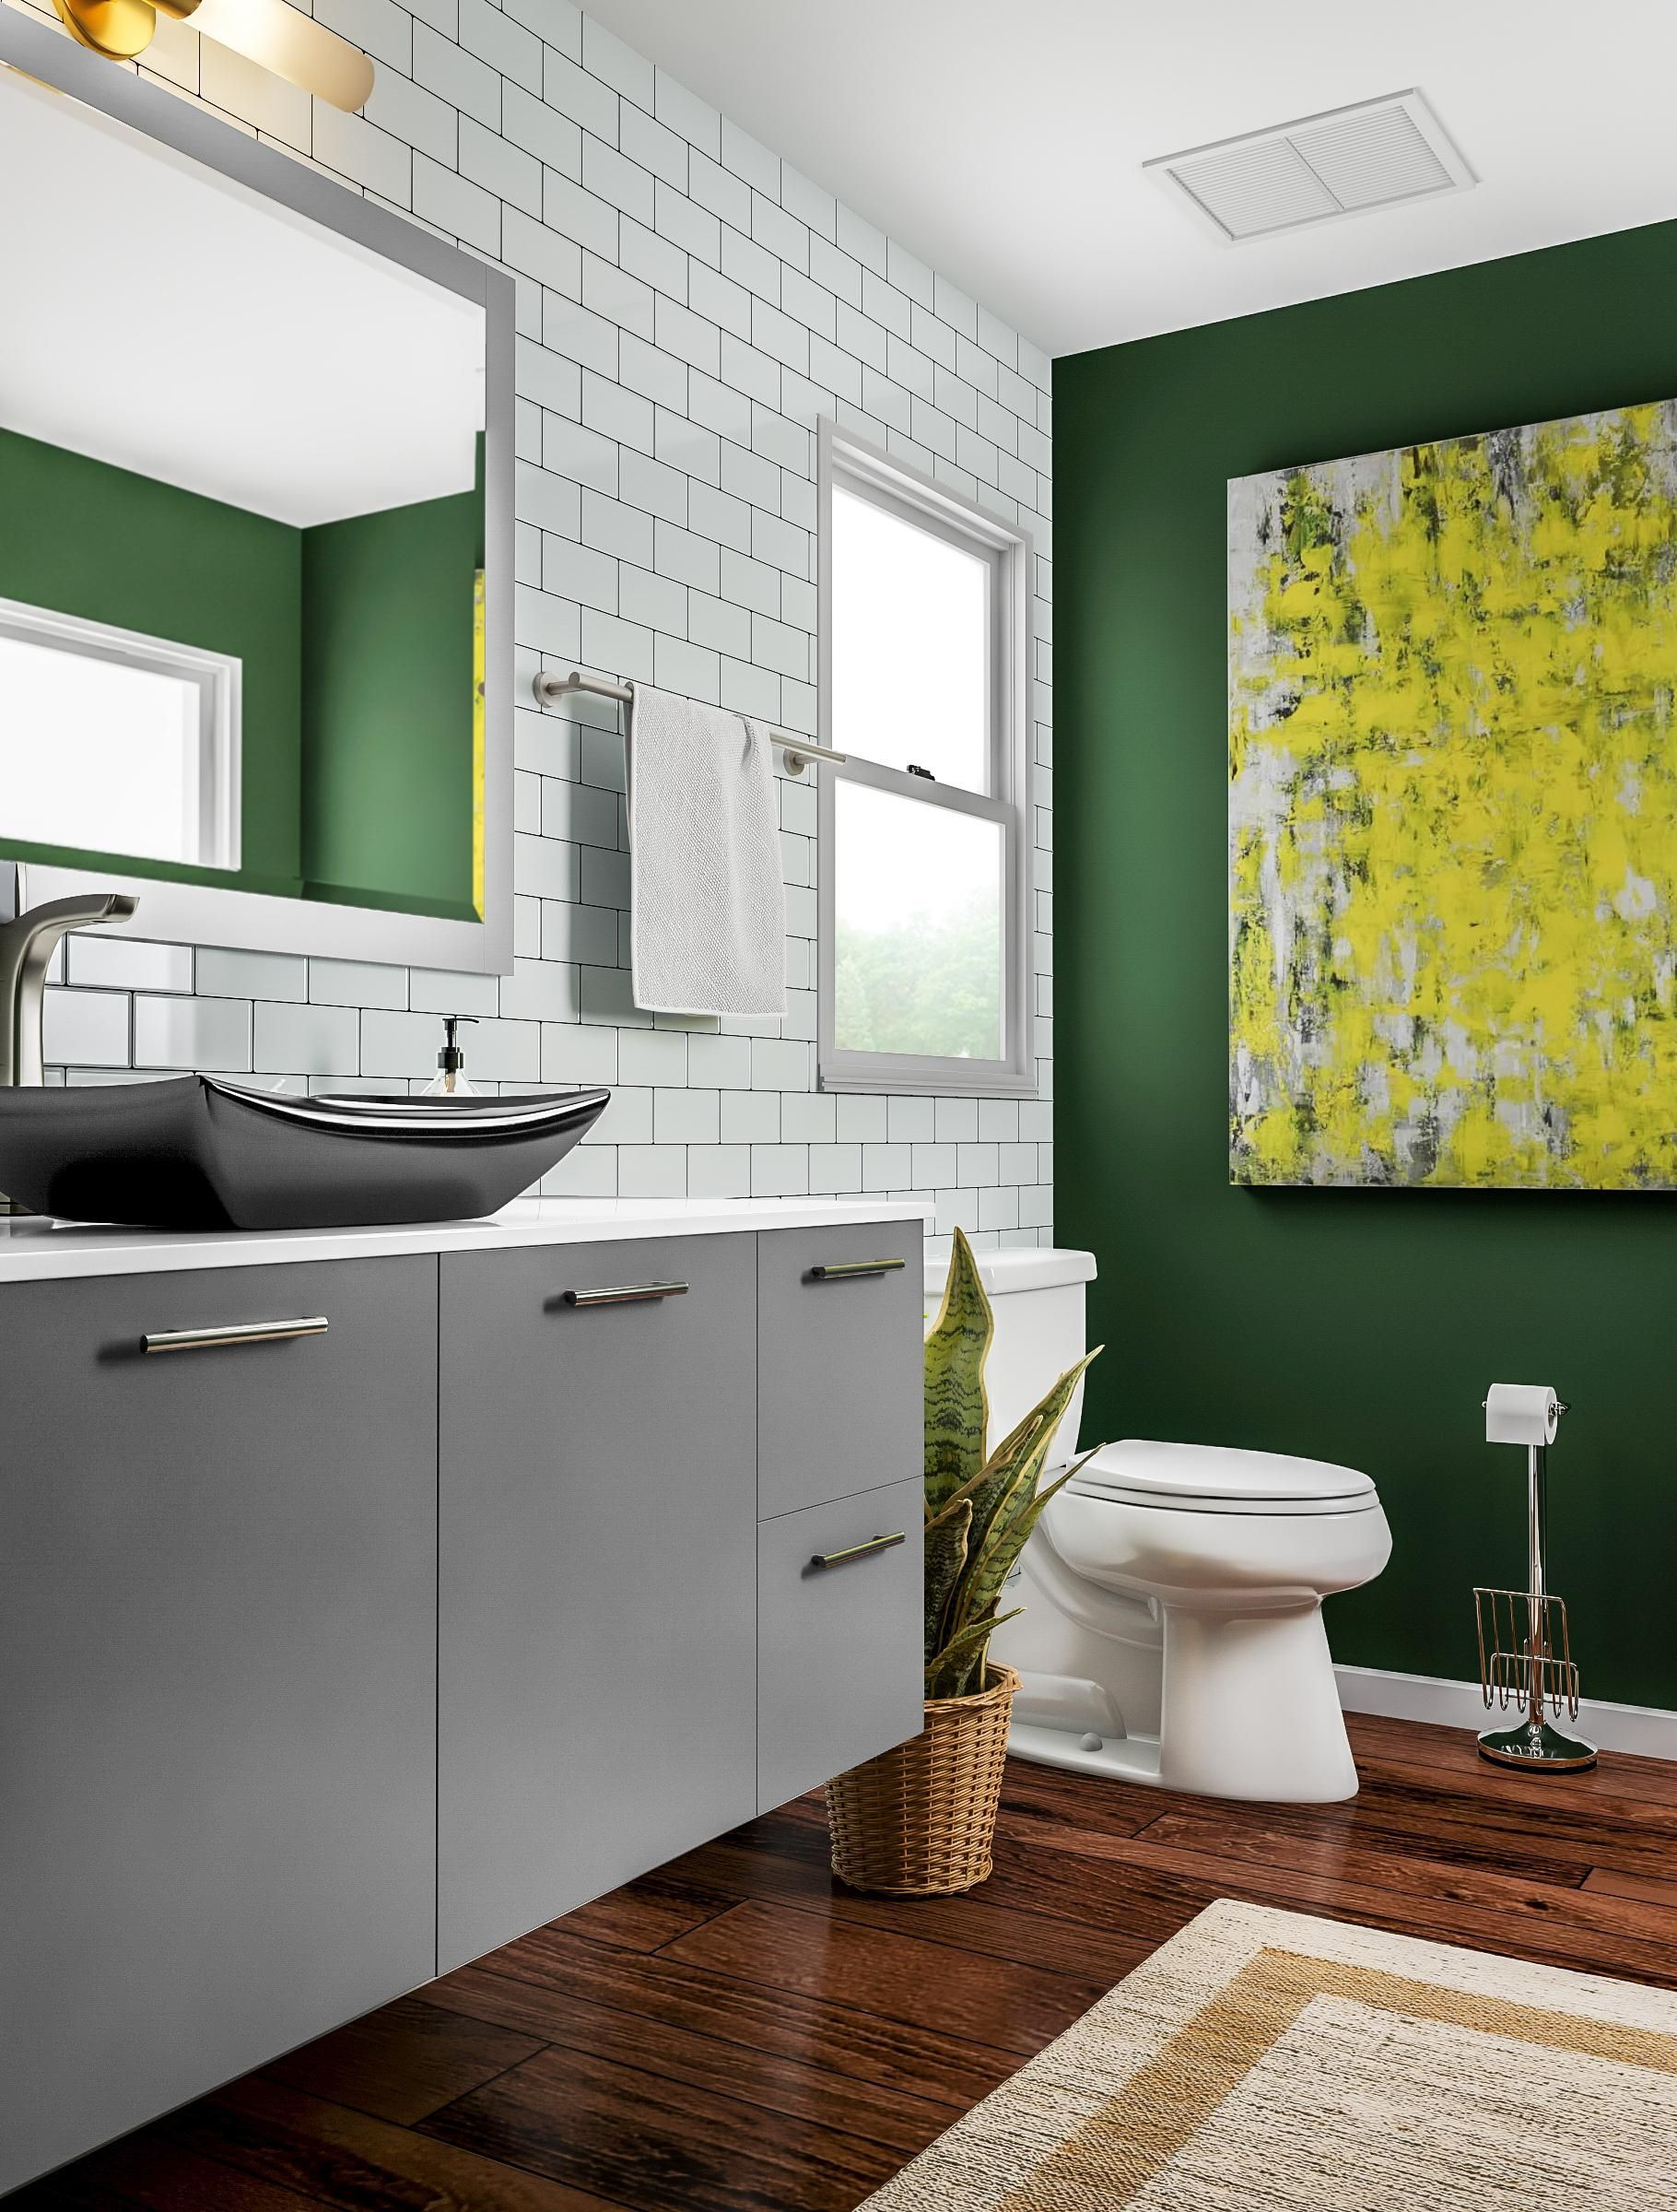 Add A Dash Of Luck To Your Renovation With A Shamrock Green Accent Wall This Bathroom Stays Stately With Green Bathroom Colors Green Bathroom Bathroom Colors